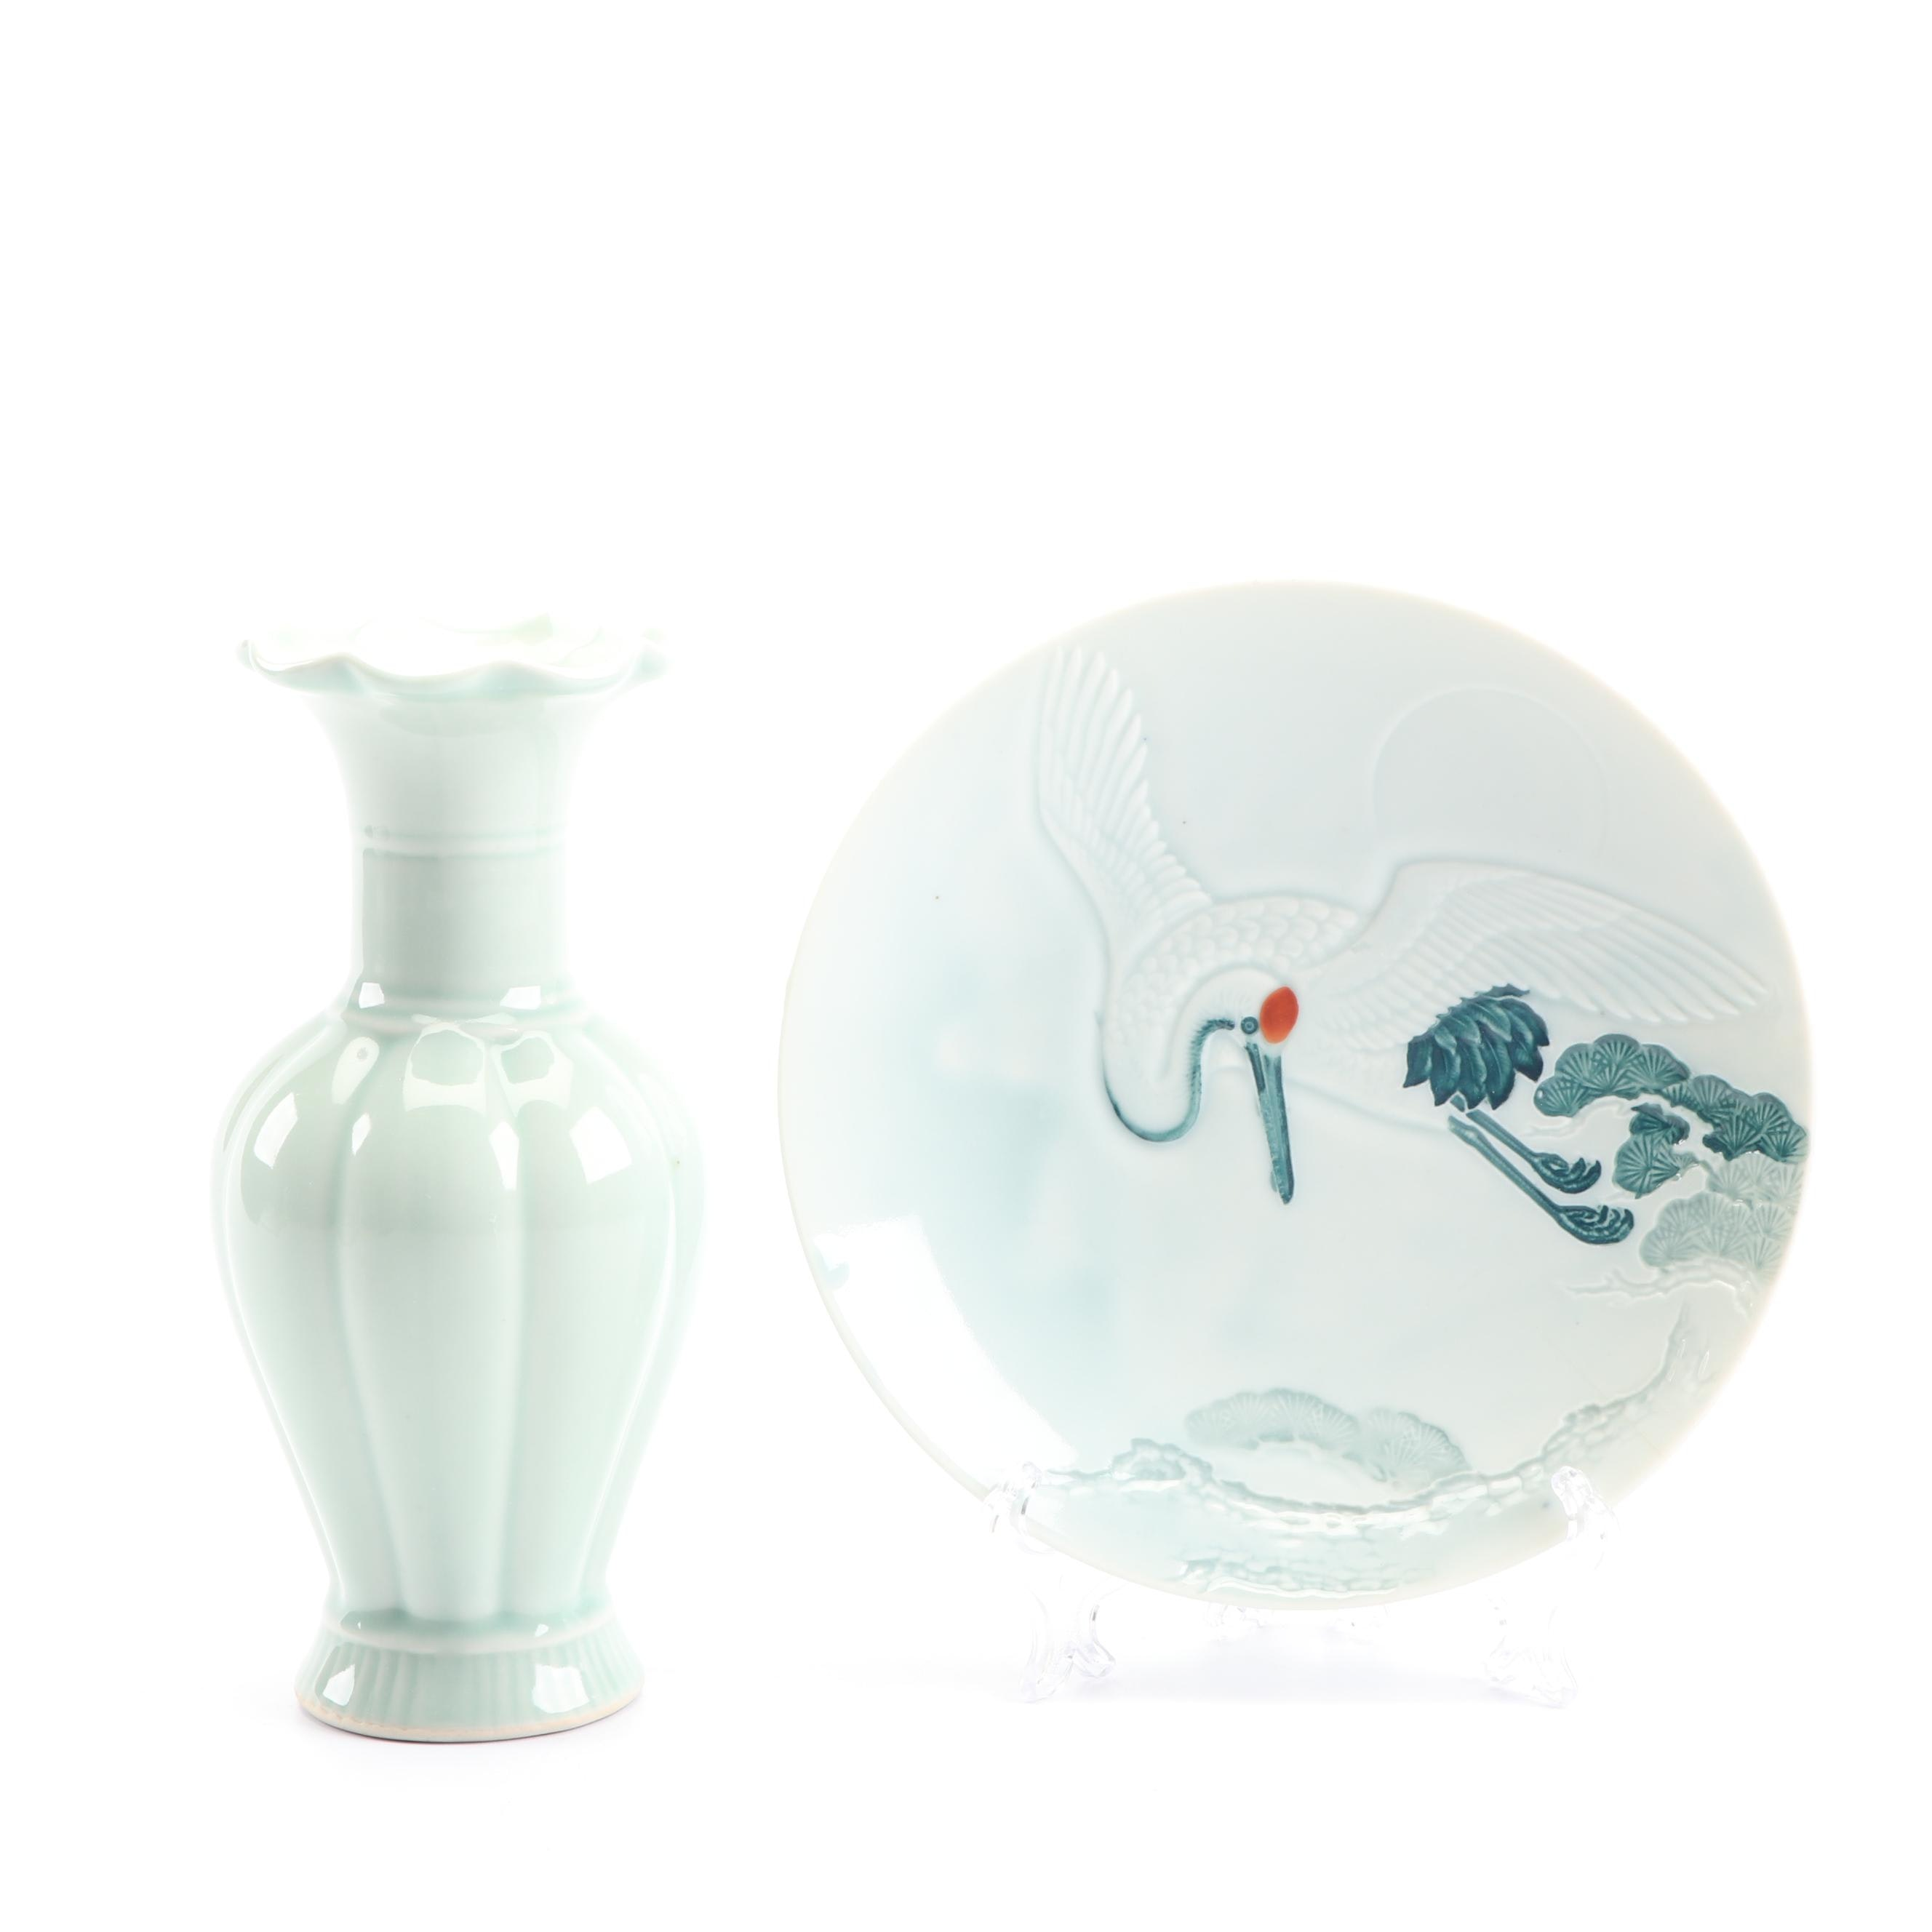 Celadon Vase and Hand-Painted Bowl with Bird Design